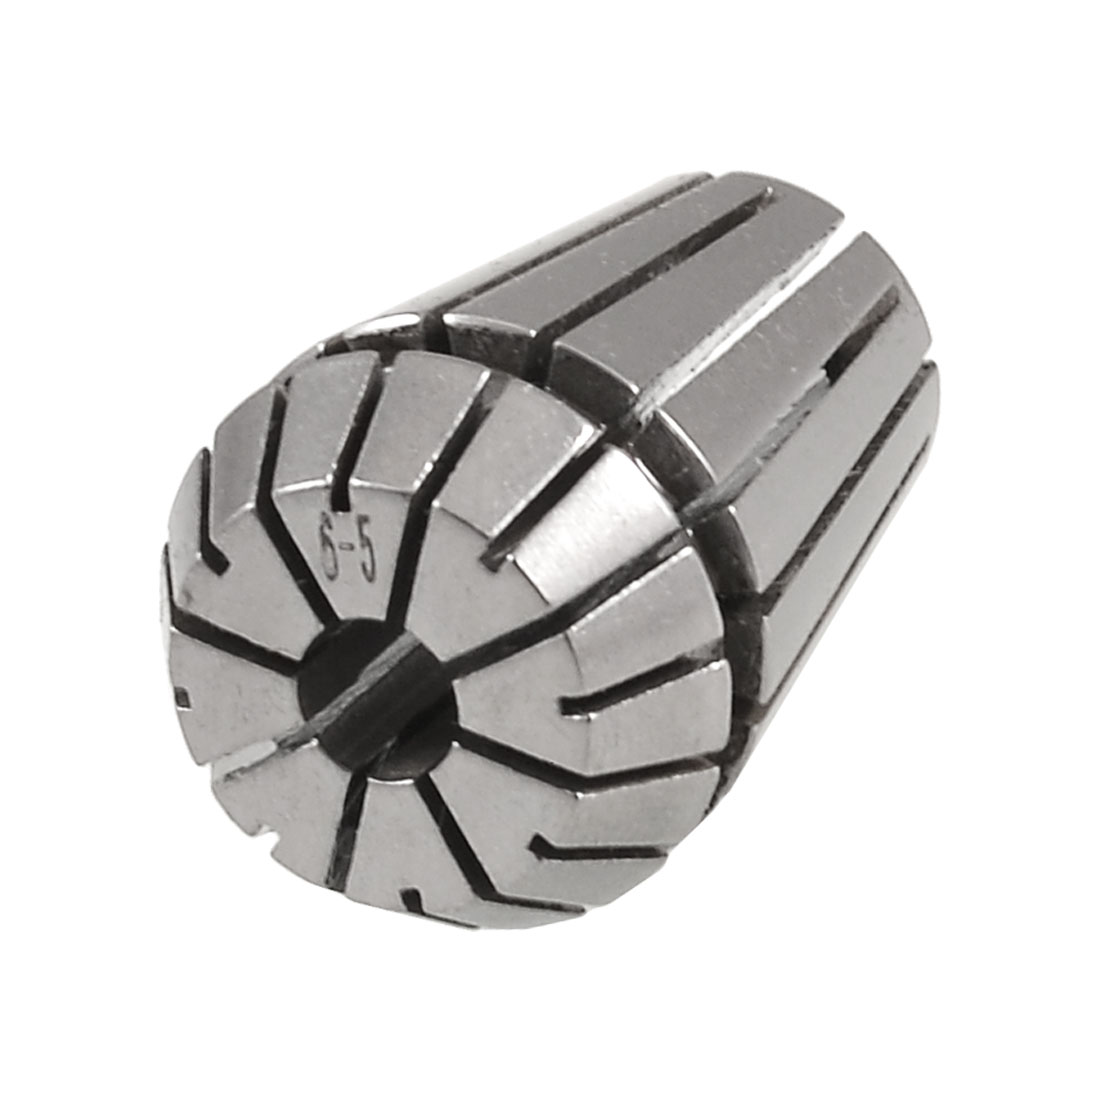 Machine 5-6mm Clamping Range Spring Collet Chuck ER20-6